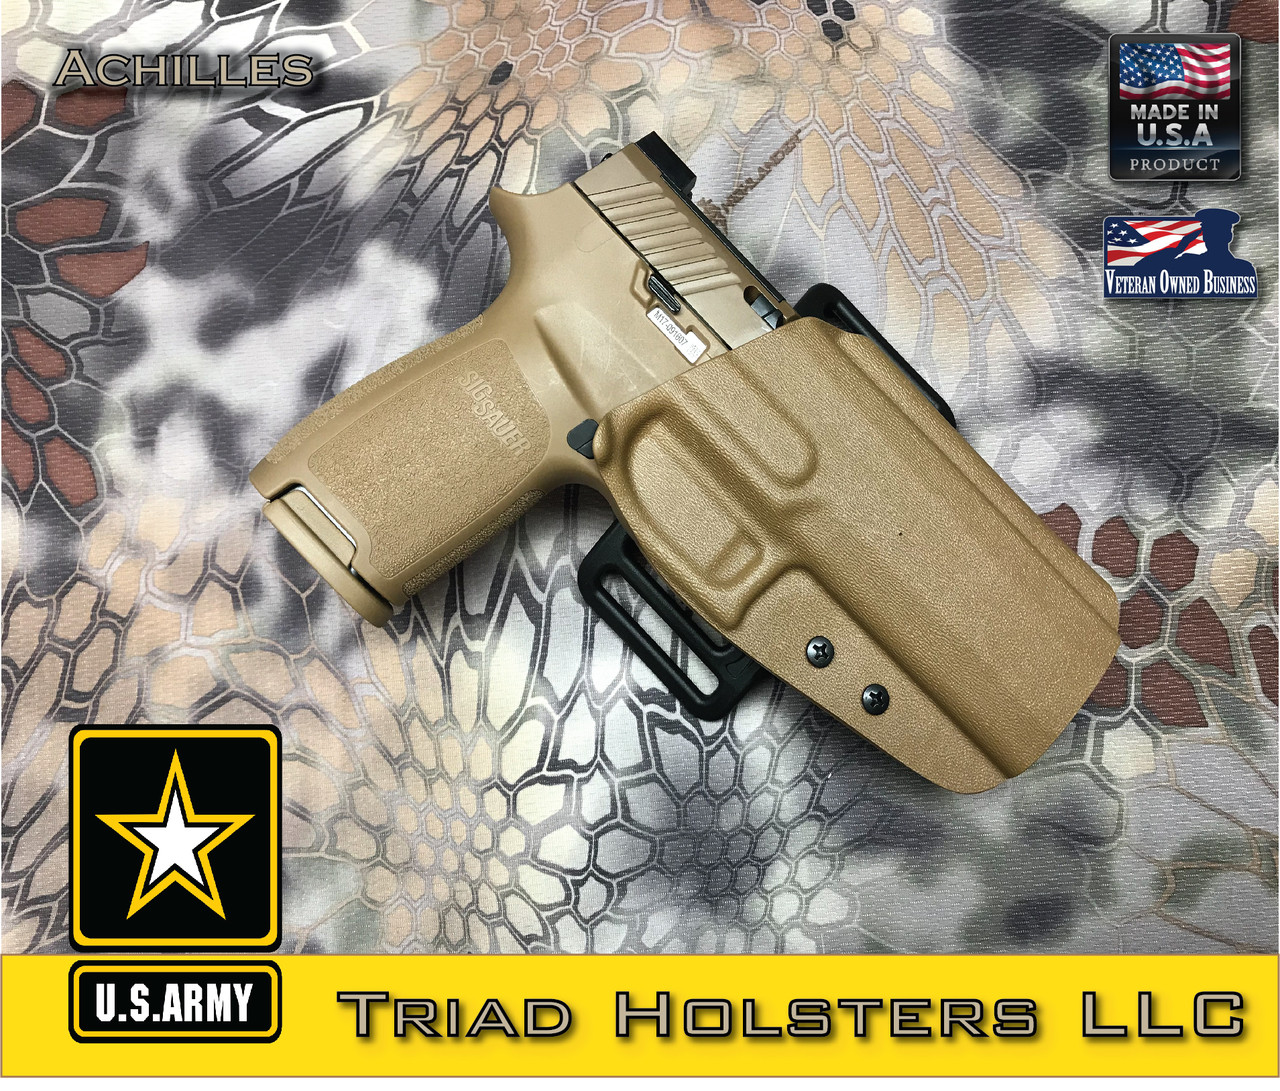 Kydex Holster Sig Sauer M17 Achilles OWB Outside the Waistband